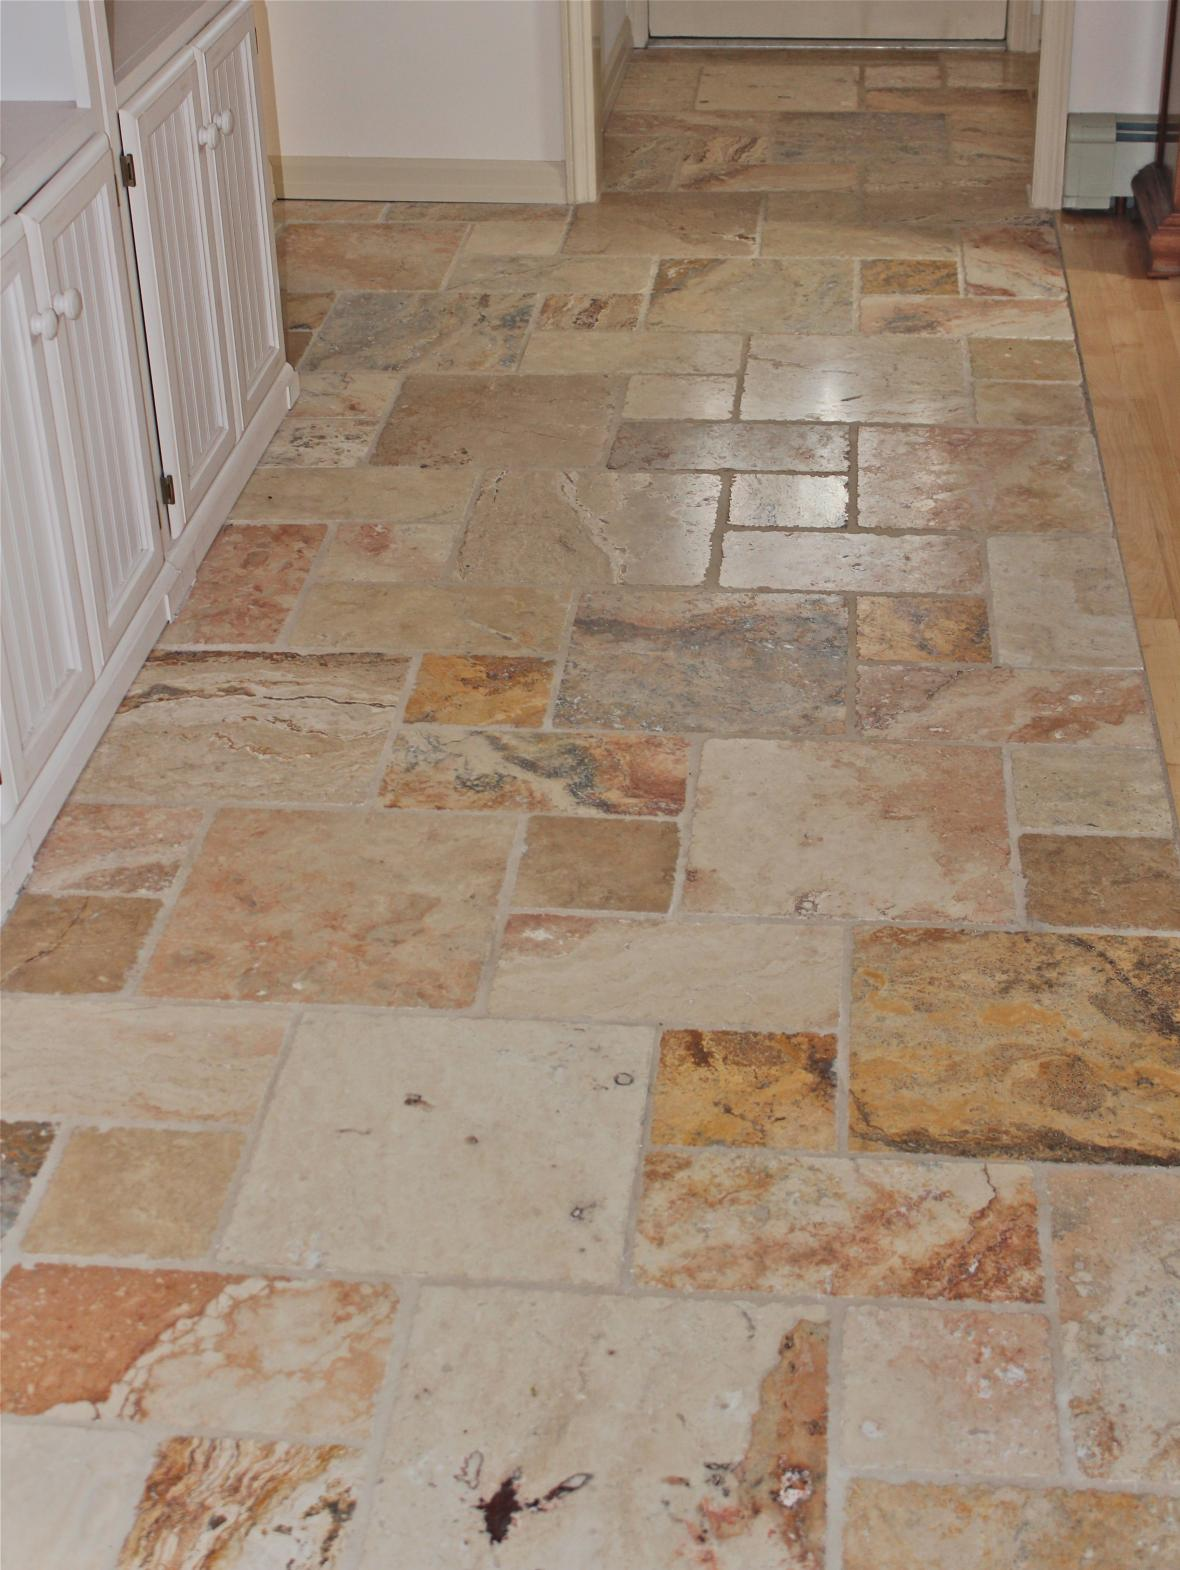 Pics Photos - Marble Floor Tile Pattern